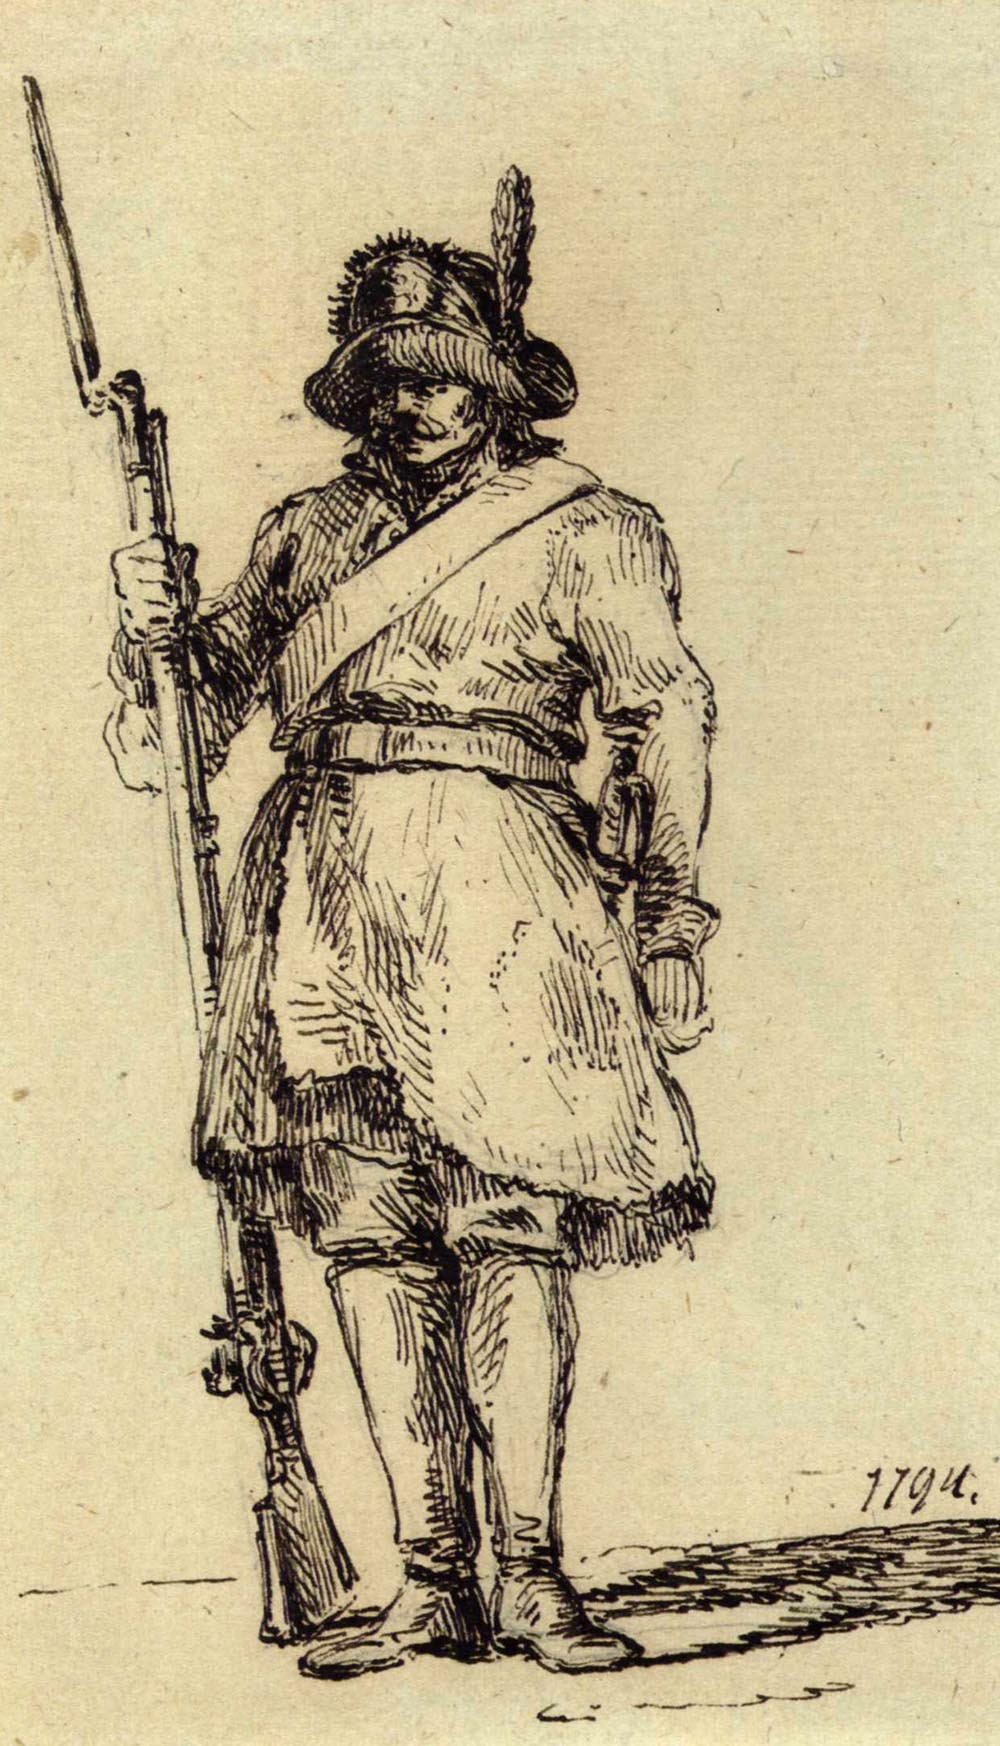 Soldier of the Kosciuszko's Army